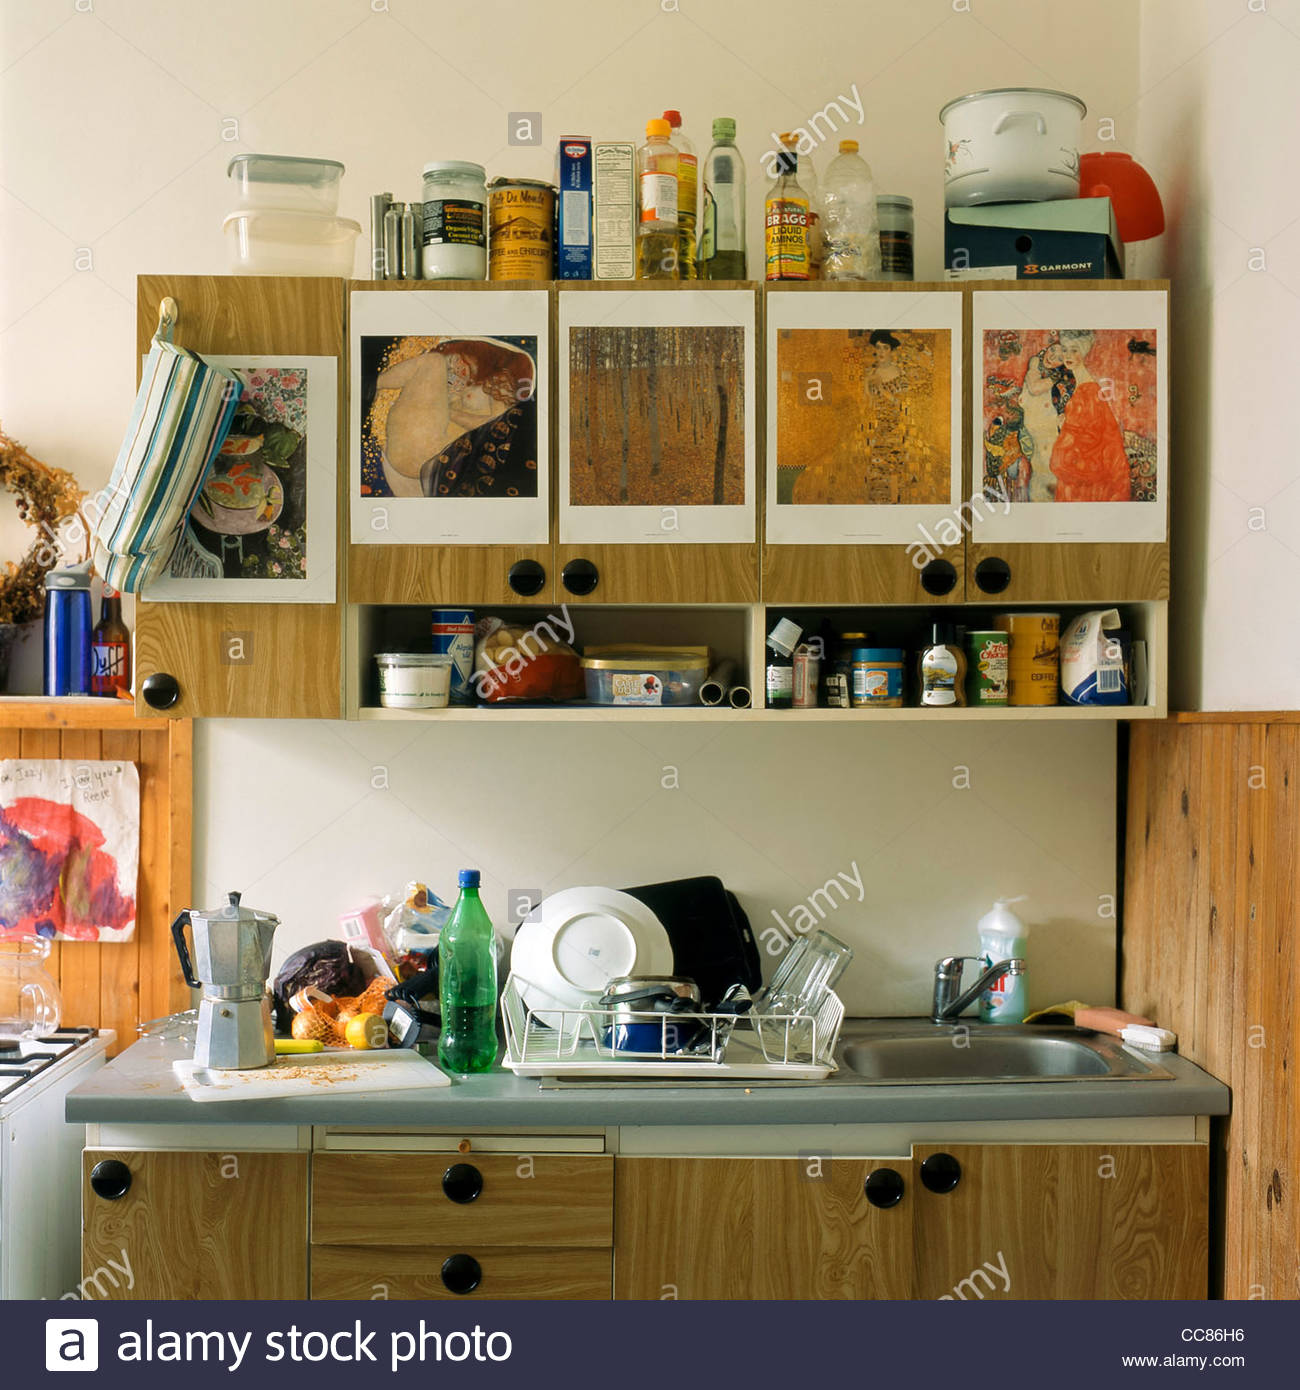 Messy Kitchen: Messy Room Mess Stock Photos & Messy Room Mess Stock